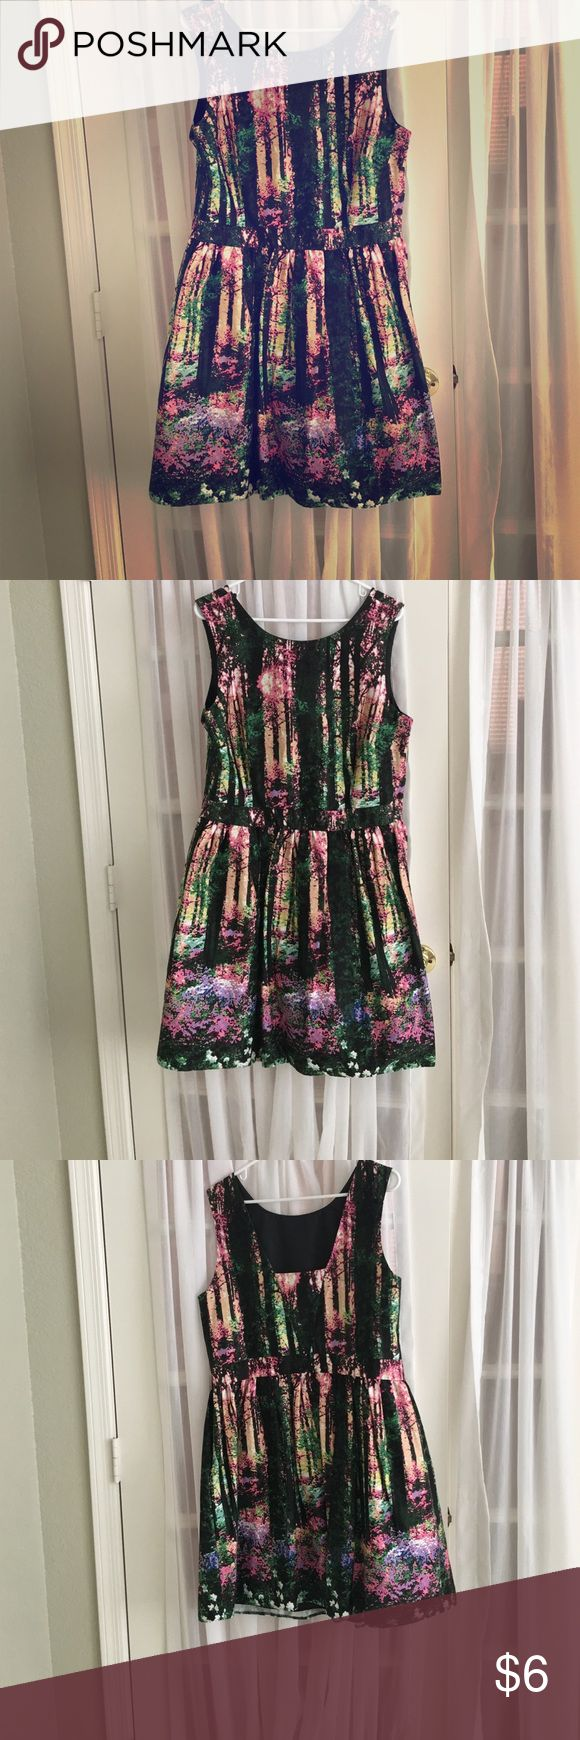 Pretty Primark dress, size US 16 NWT Multi colored beautiful pattern. Tight around the top and then flowing skirt, goes to just above the knee. This is from British department store Primark. The dress is never worn and new with tags. Primark Dresses Mini